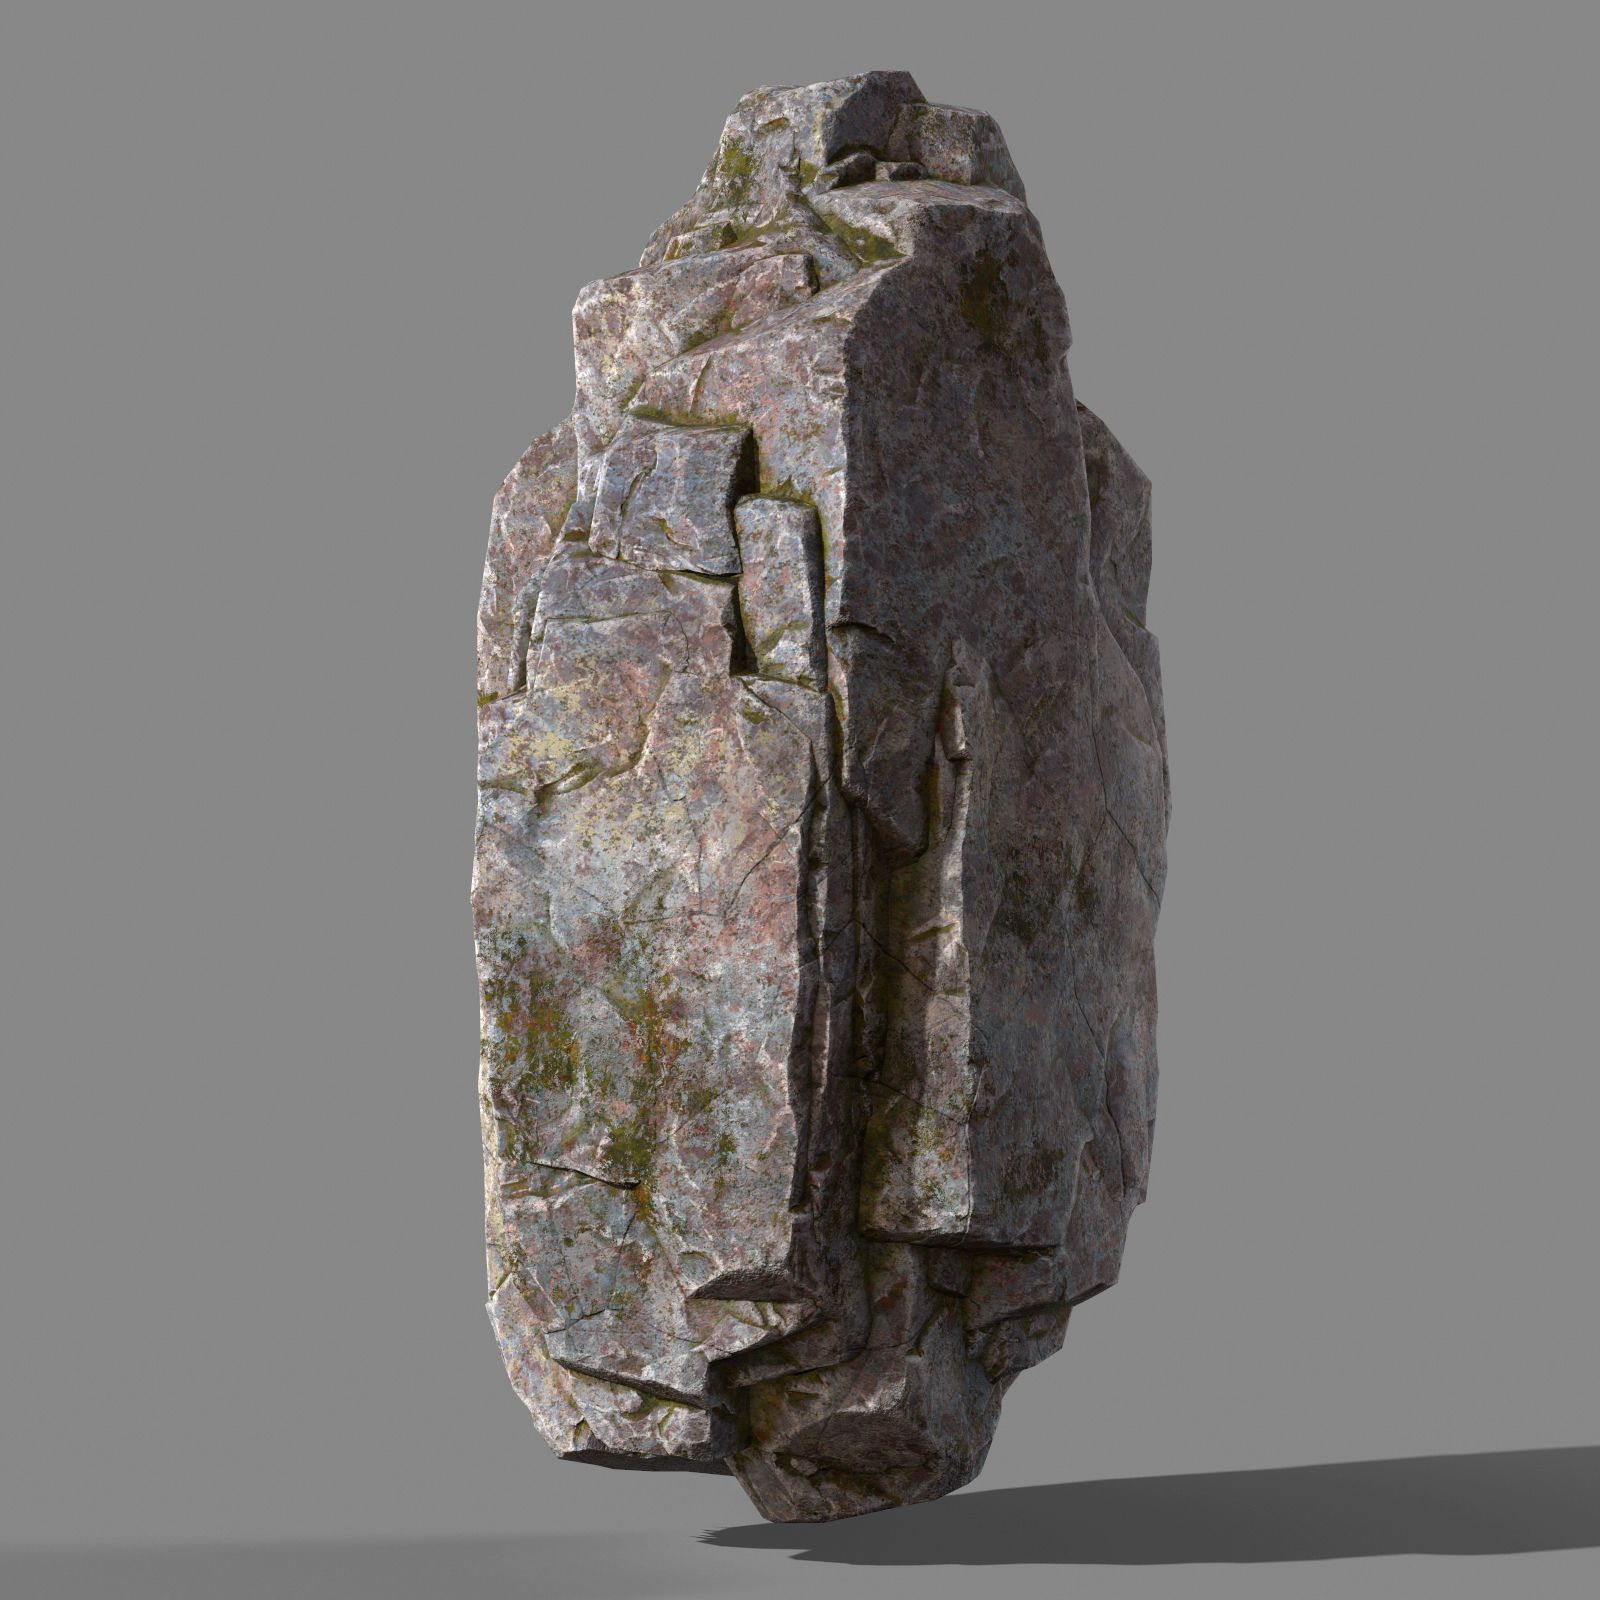 mossy rock 3d model low-poly obj fbx ma mb stl mtl 1 | Rock Model in